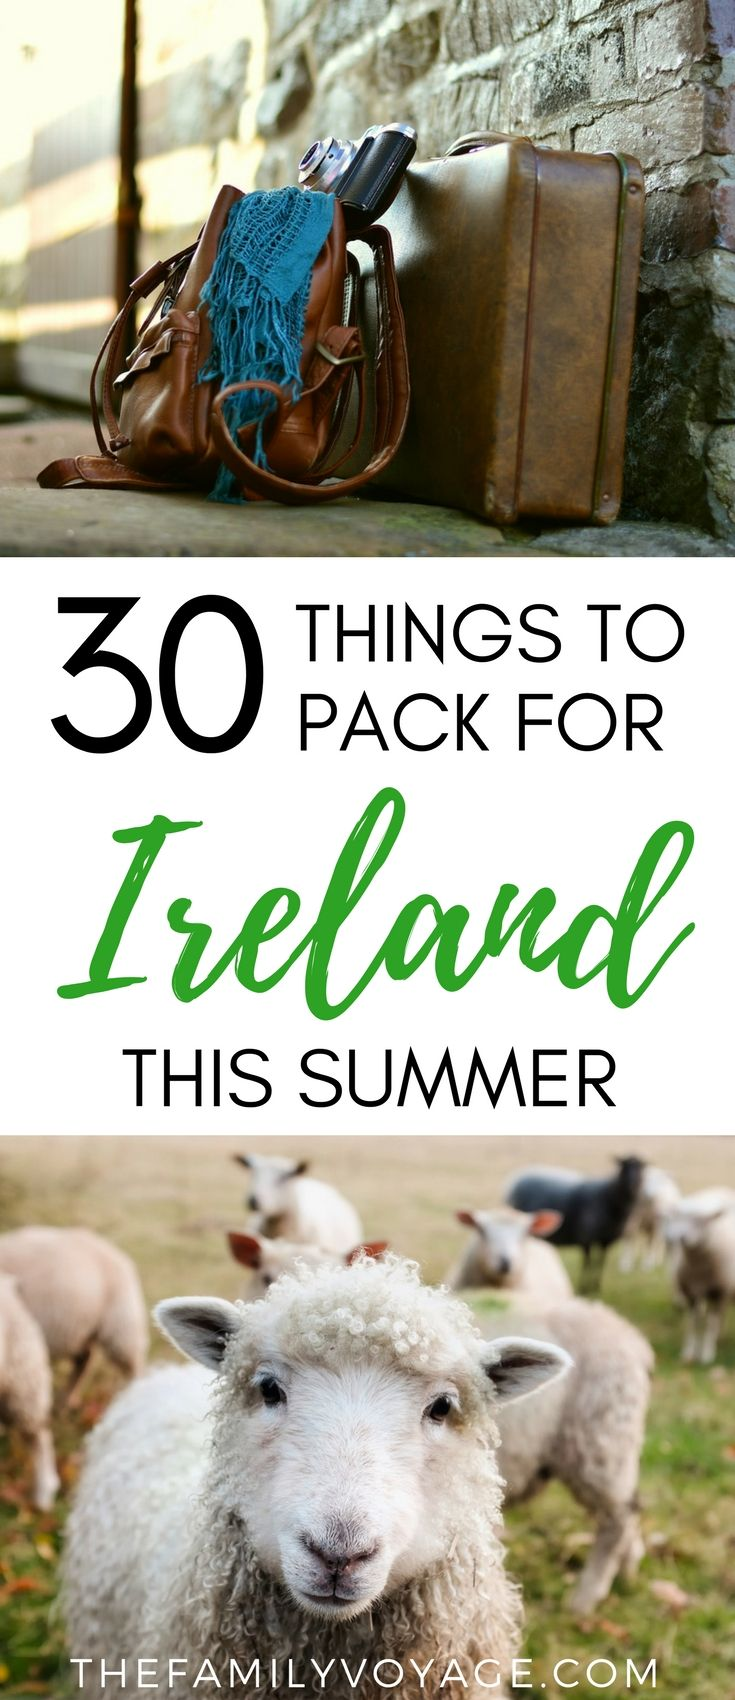 Traveling to Ireland this summer? Check our our ultimate packing list to lighten your load whether your visiting Dublin, Kerry or other beautiful areas. Our travel capsule wardrobe for Ireland has you covered for city exploring and romping around outdoors! What to pack for Ireland in June | Ireland travel capsule wardrobe for summer trip to Europe #Ireland #travel #packinglist #capsulewardrobe